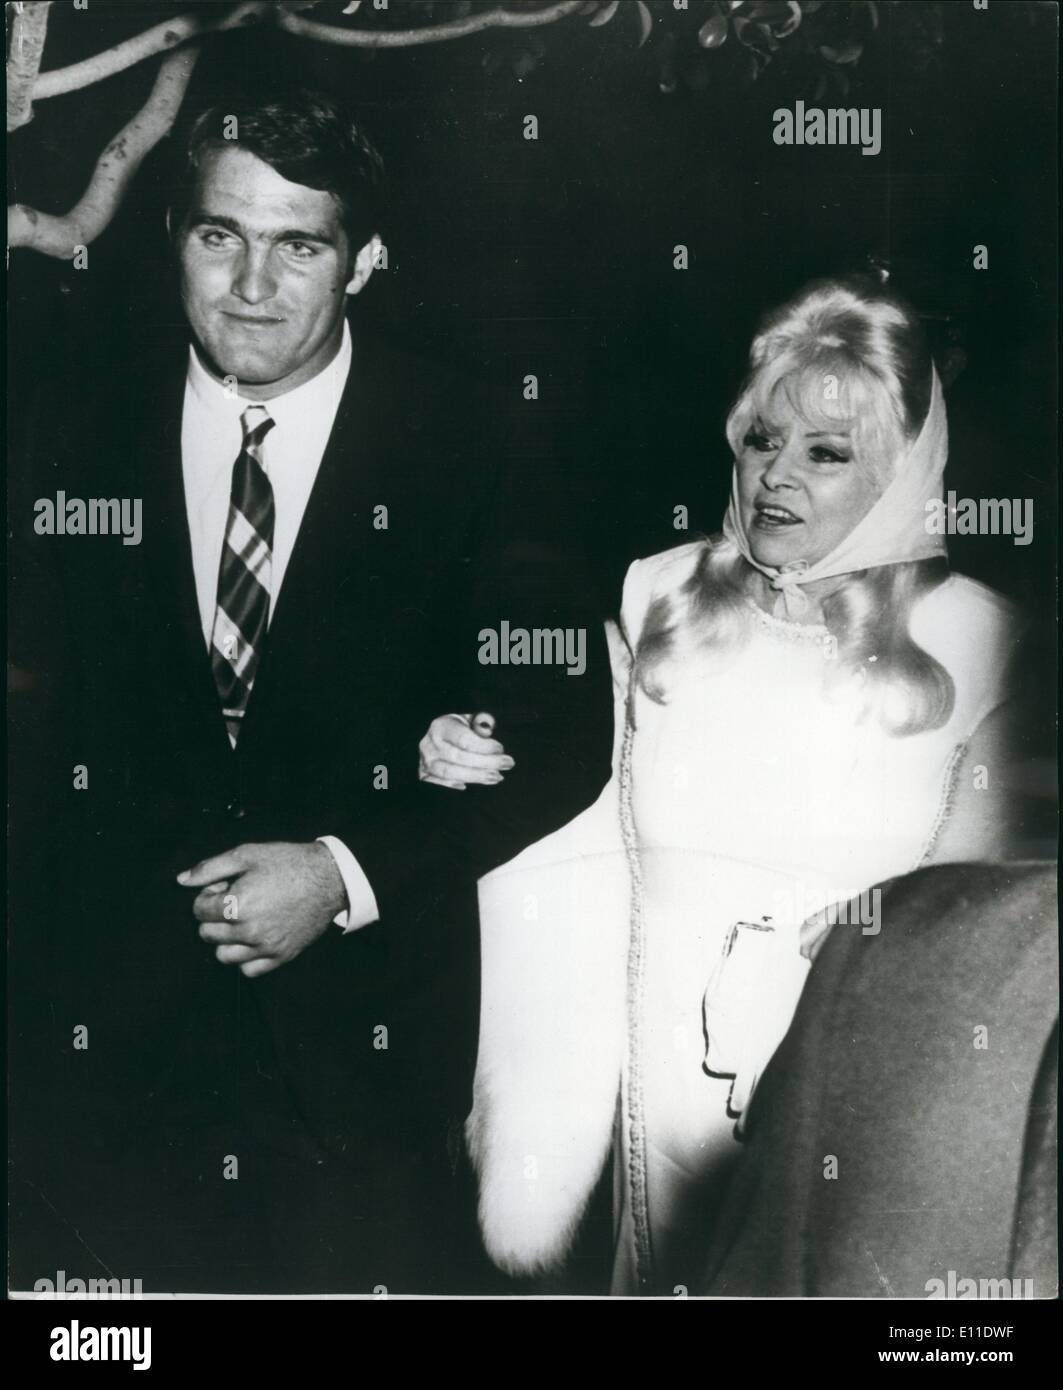 Sep. 09, 1977 - Mae West - Still Makes The Hollywood Scene: Mae West, whose hourglass figure made her the sexpot of films in the 1930's still makes the Hollywood scene despite her 76 years. Here she is seen with former professional football player, Adrian Strange. Mae seems to continue her leaning, towards young muscular men as she did in her ''Diamond Lil' days. - Stock Image